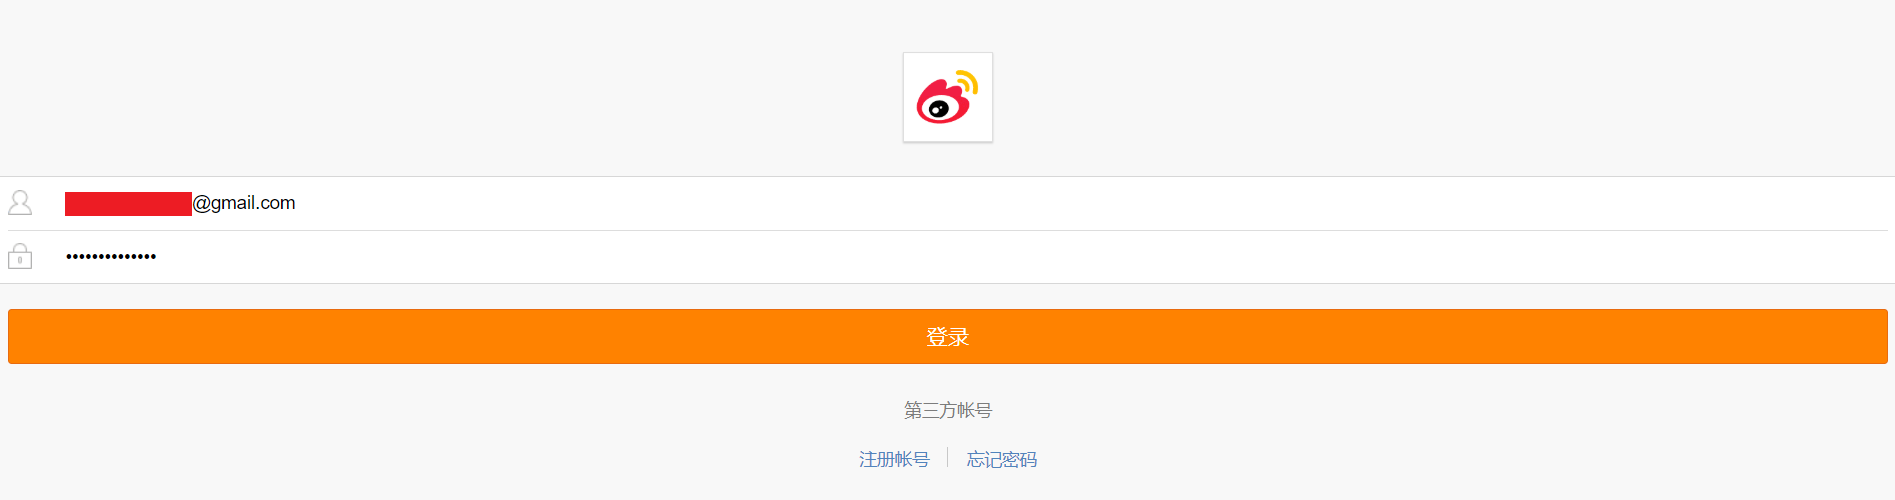 weibo log in page